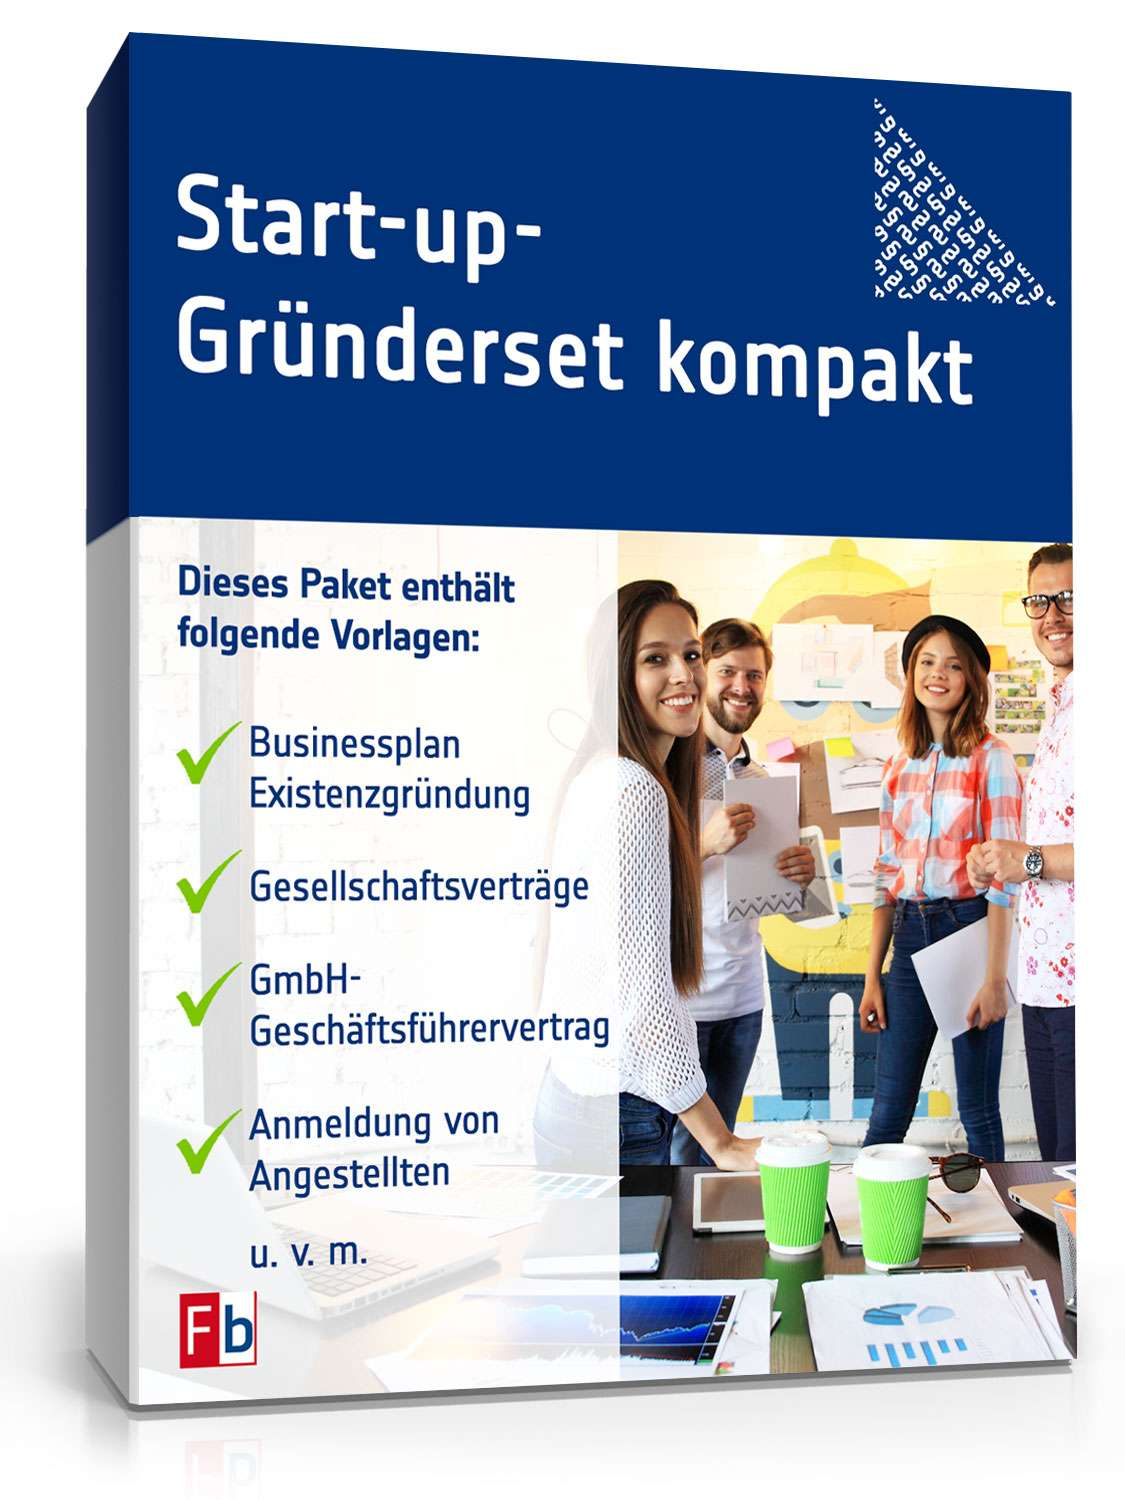 Start-up-Gründerset kompakt